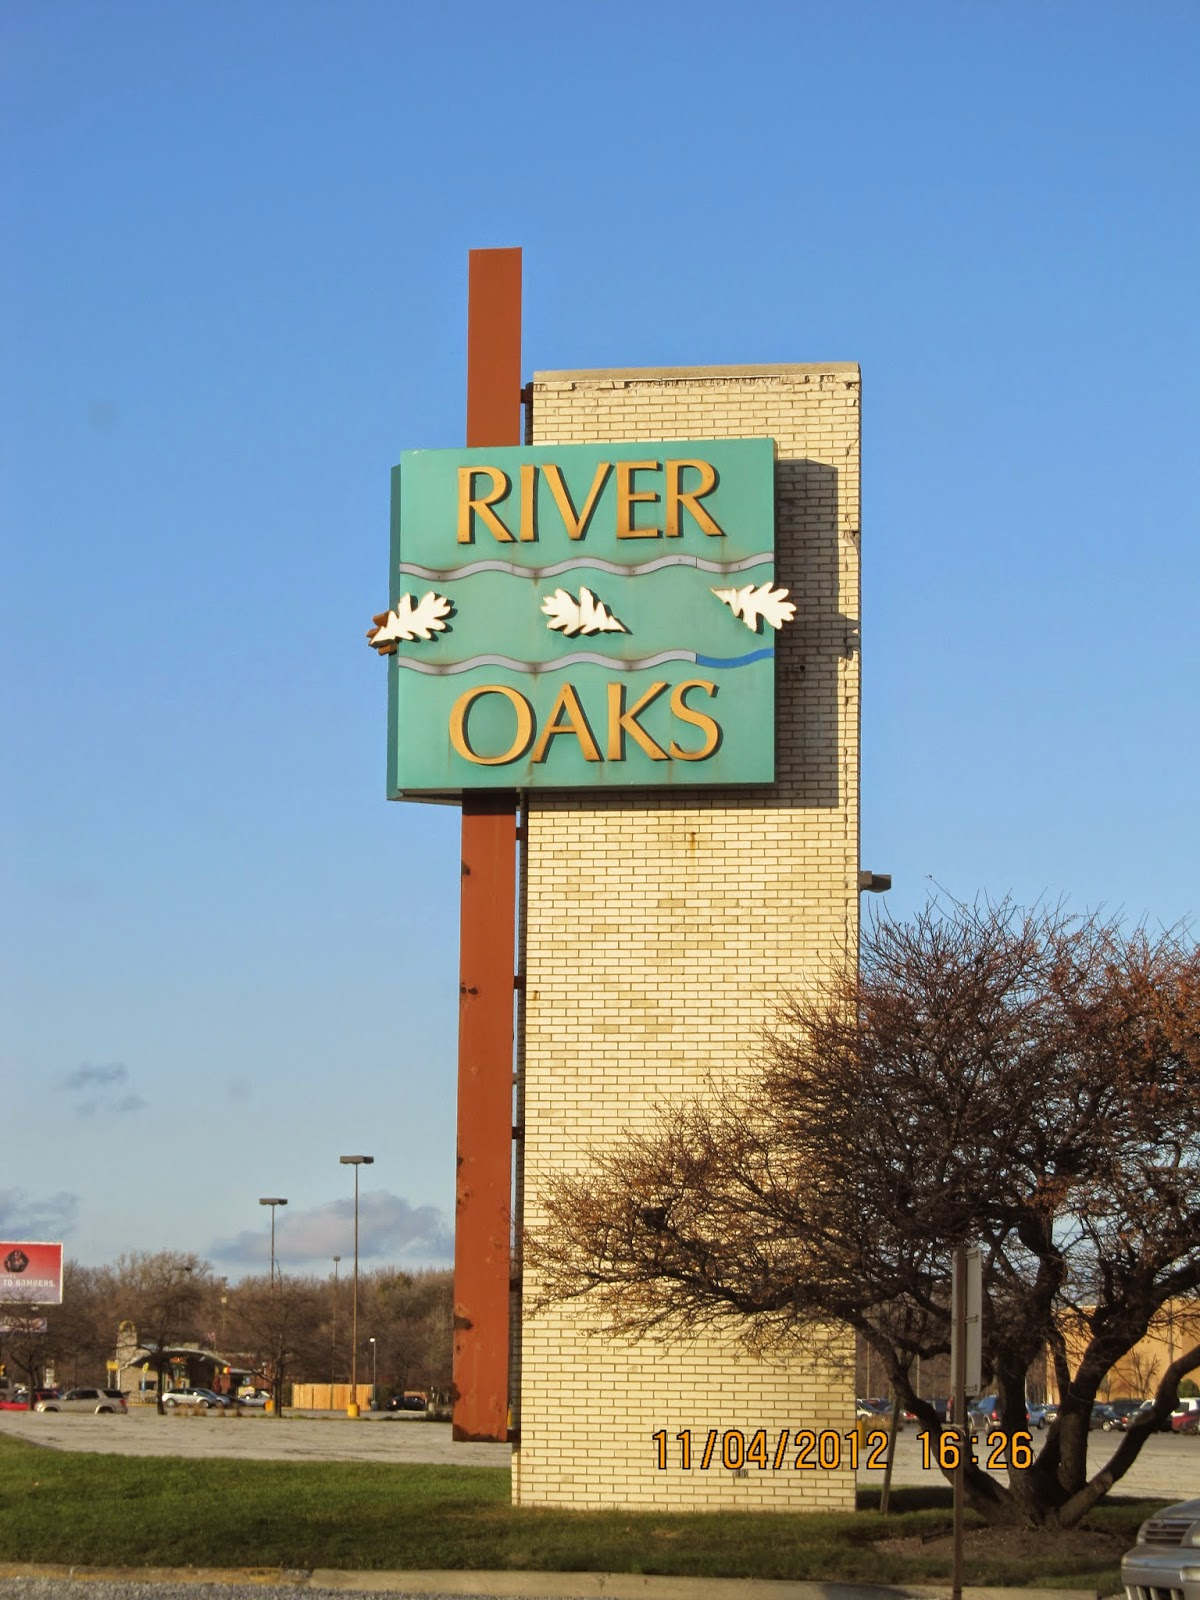 River Oaks Center Mall Is The Latest Struggling In Chicago Suburbs As Last Two Years Lost Major Anchor S